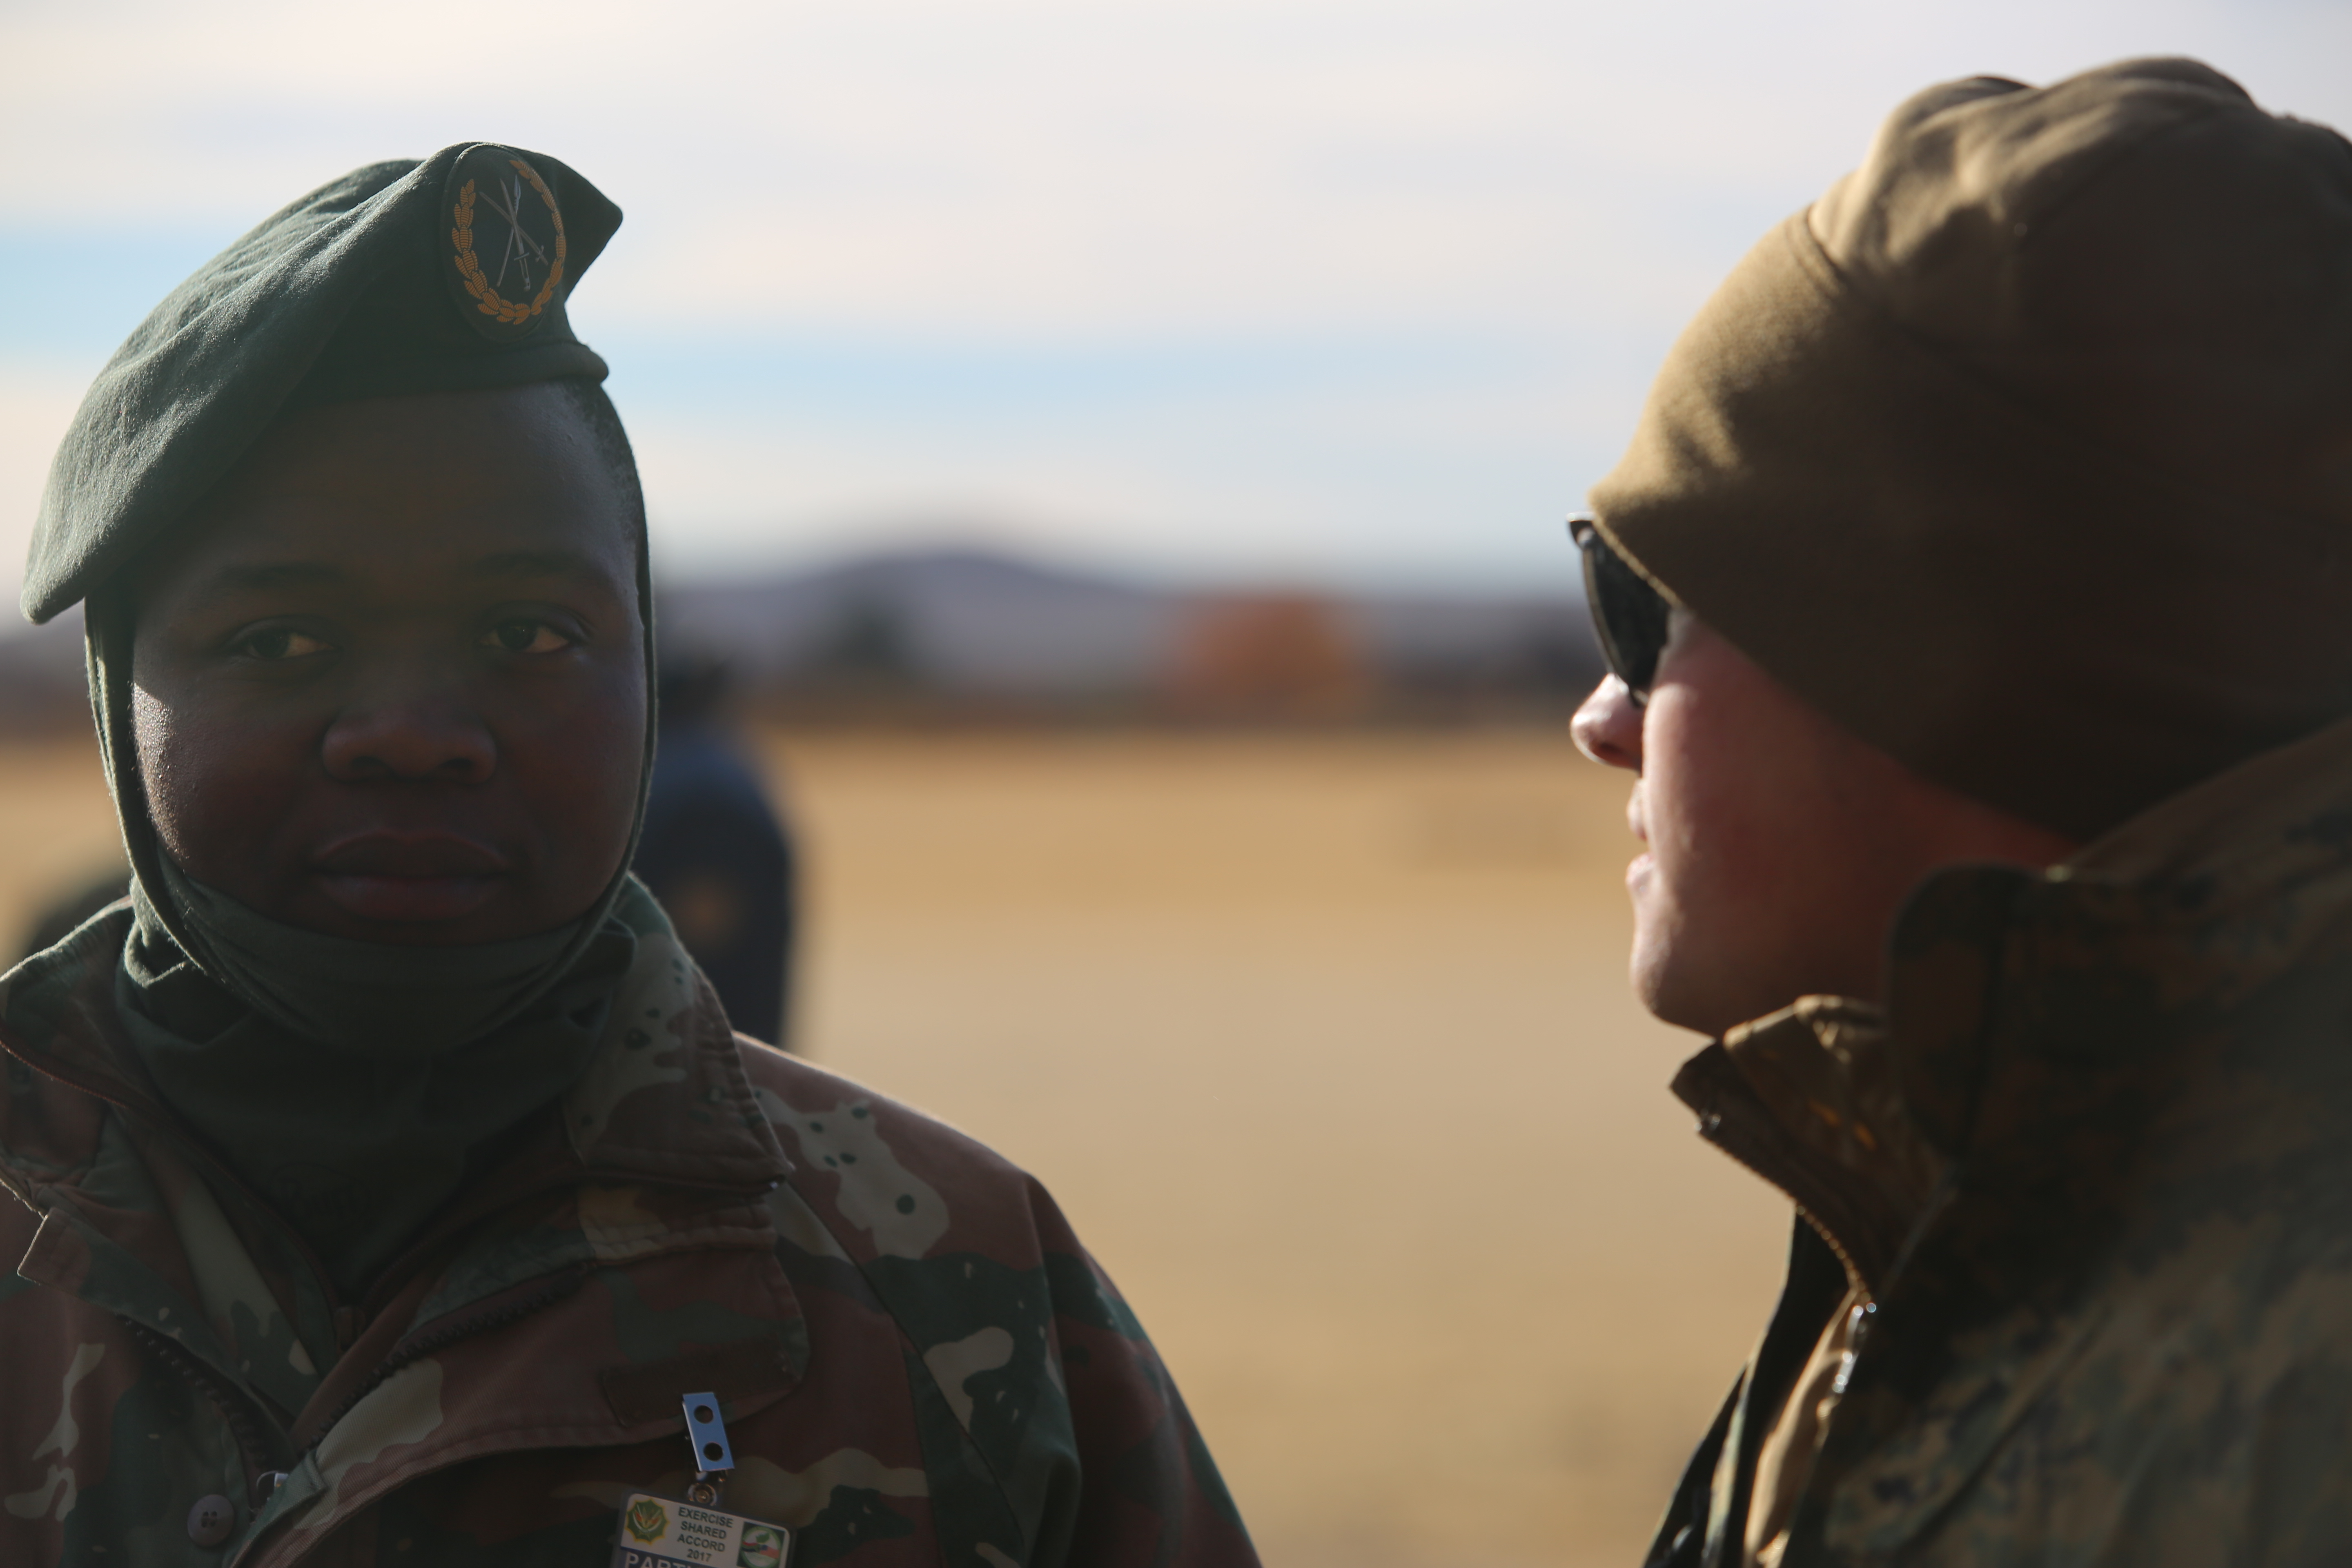 A member of the South African Army talks to and builds comraderie with a U.S. Marine during a break in training classes as part of Shared Accord 17 (SA17) at South African Army Combat Training Center, Lohatla, South Africa, July 17, 2017. SA17 is a Joint bi-lateral Field Training Exercise with our South African partners focused on Peace Keeping Operations designed to exercise participants' capability and capacity to conduct African Union / United Nations mandated Peace Keeping Operations.